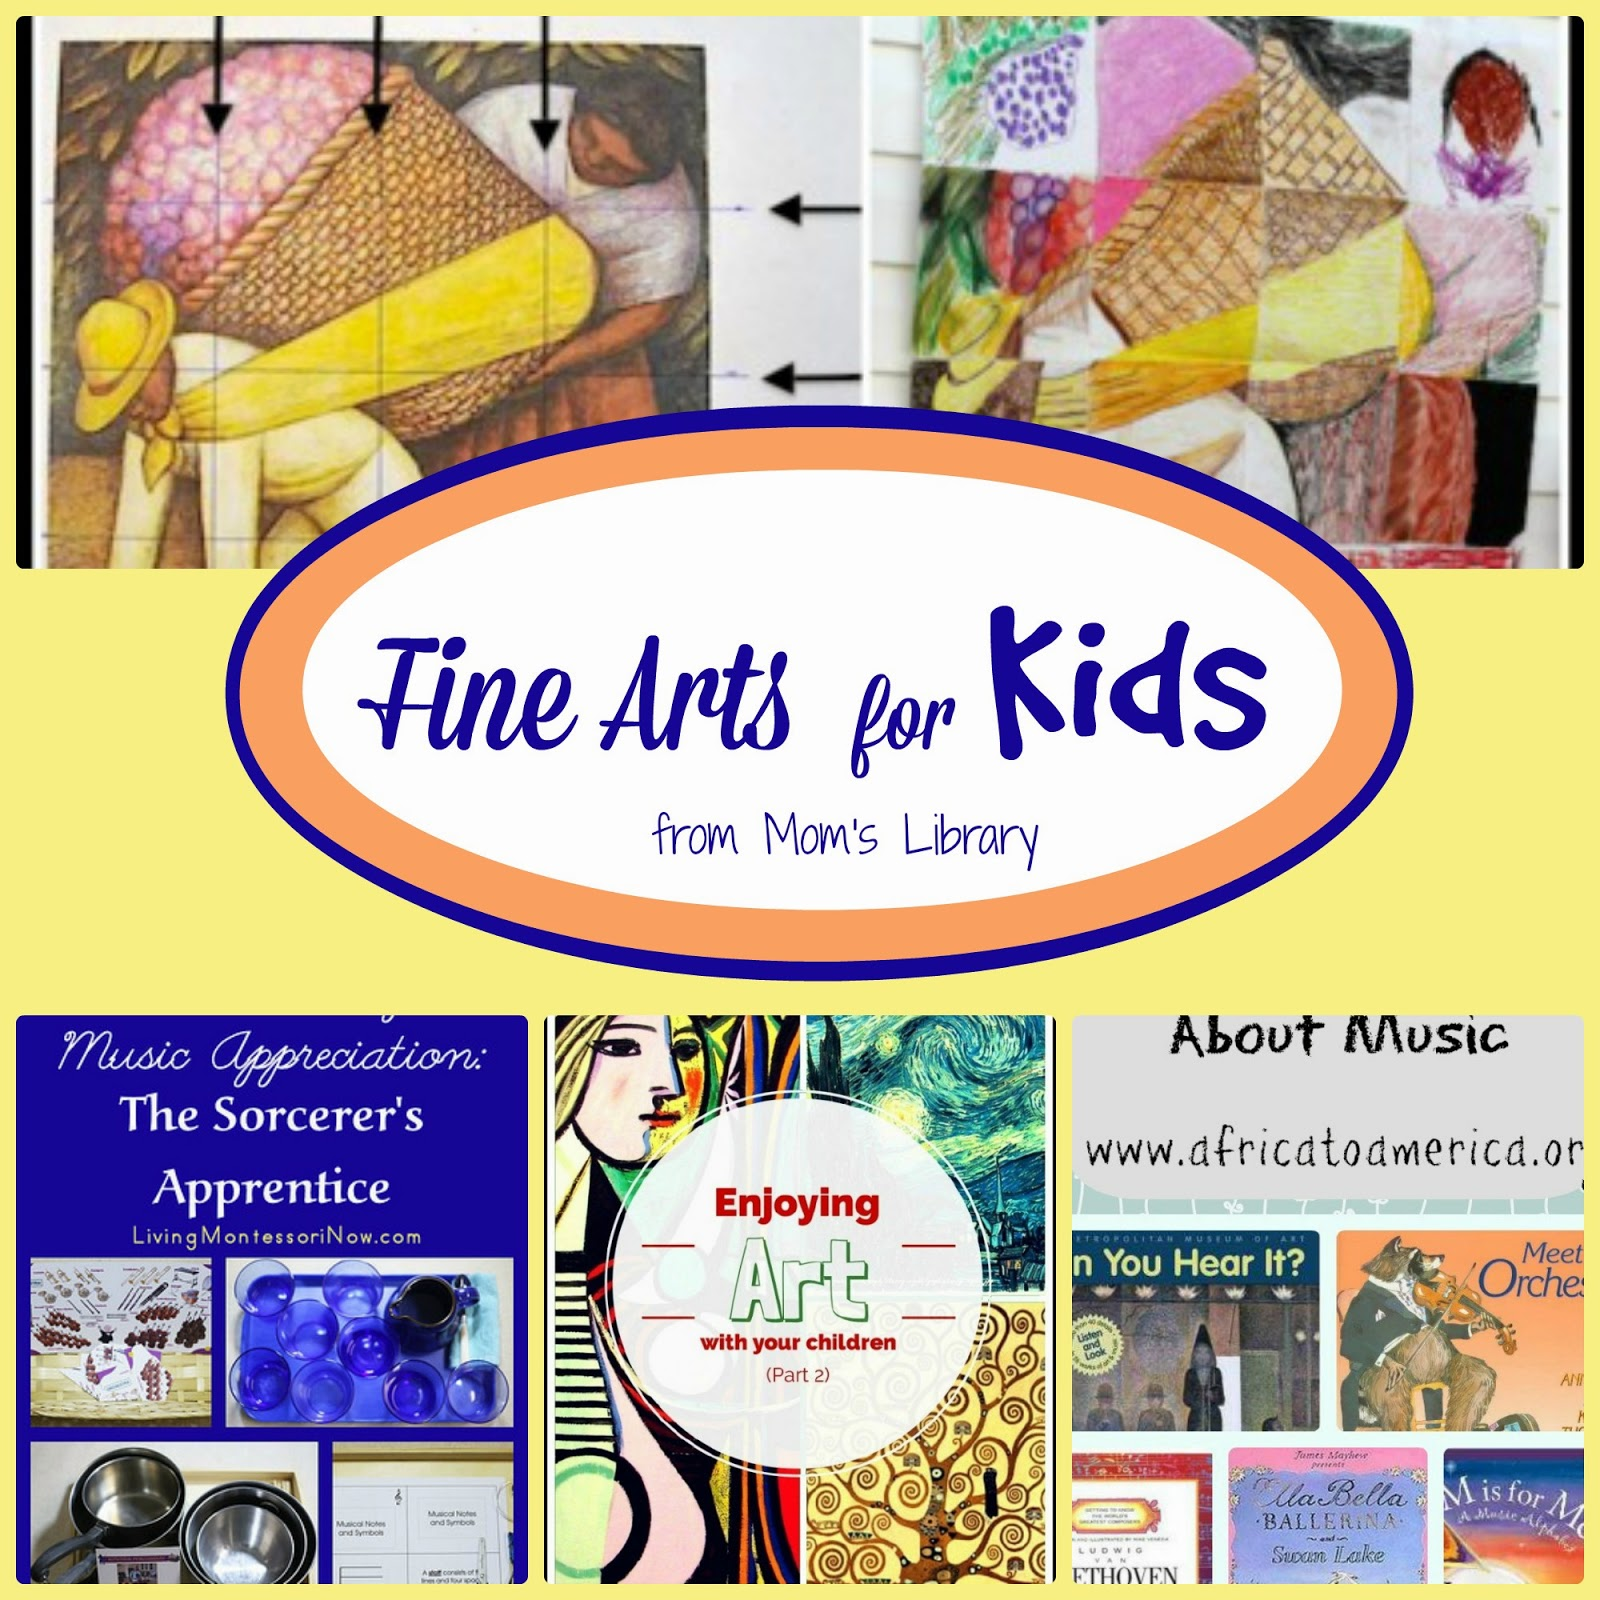 Fine Arts for Kids at Mom's Library